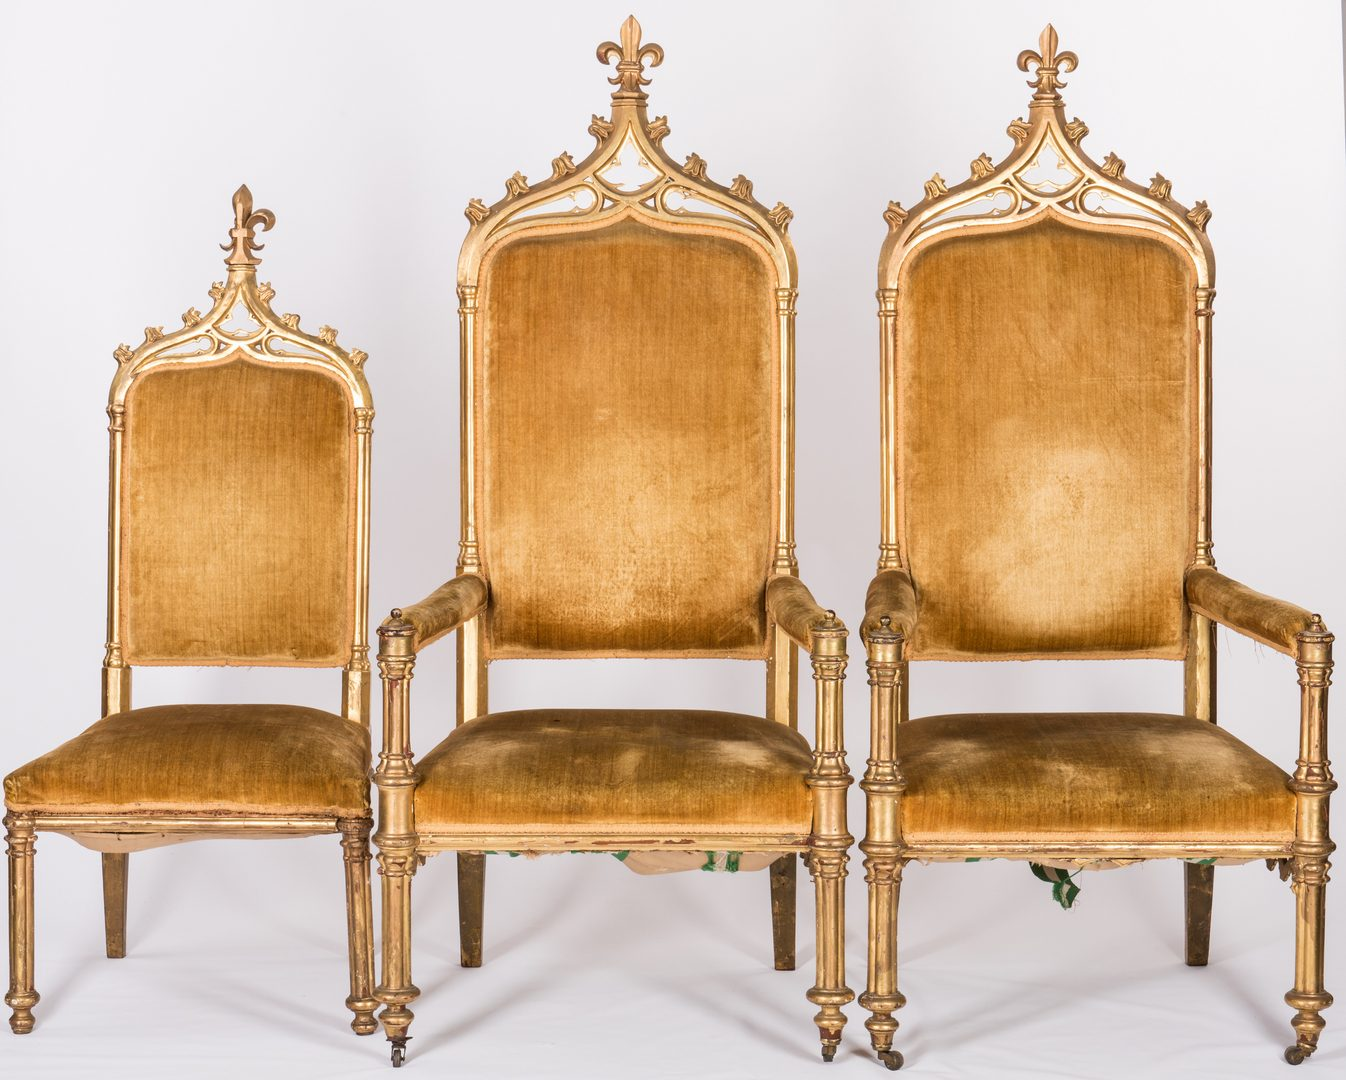 Lot 598: 3 American Gothic Revival Gilt Chairs